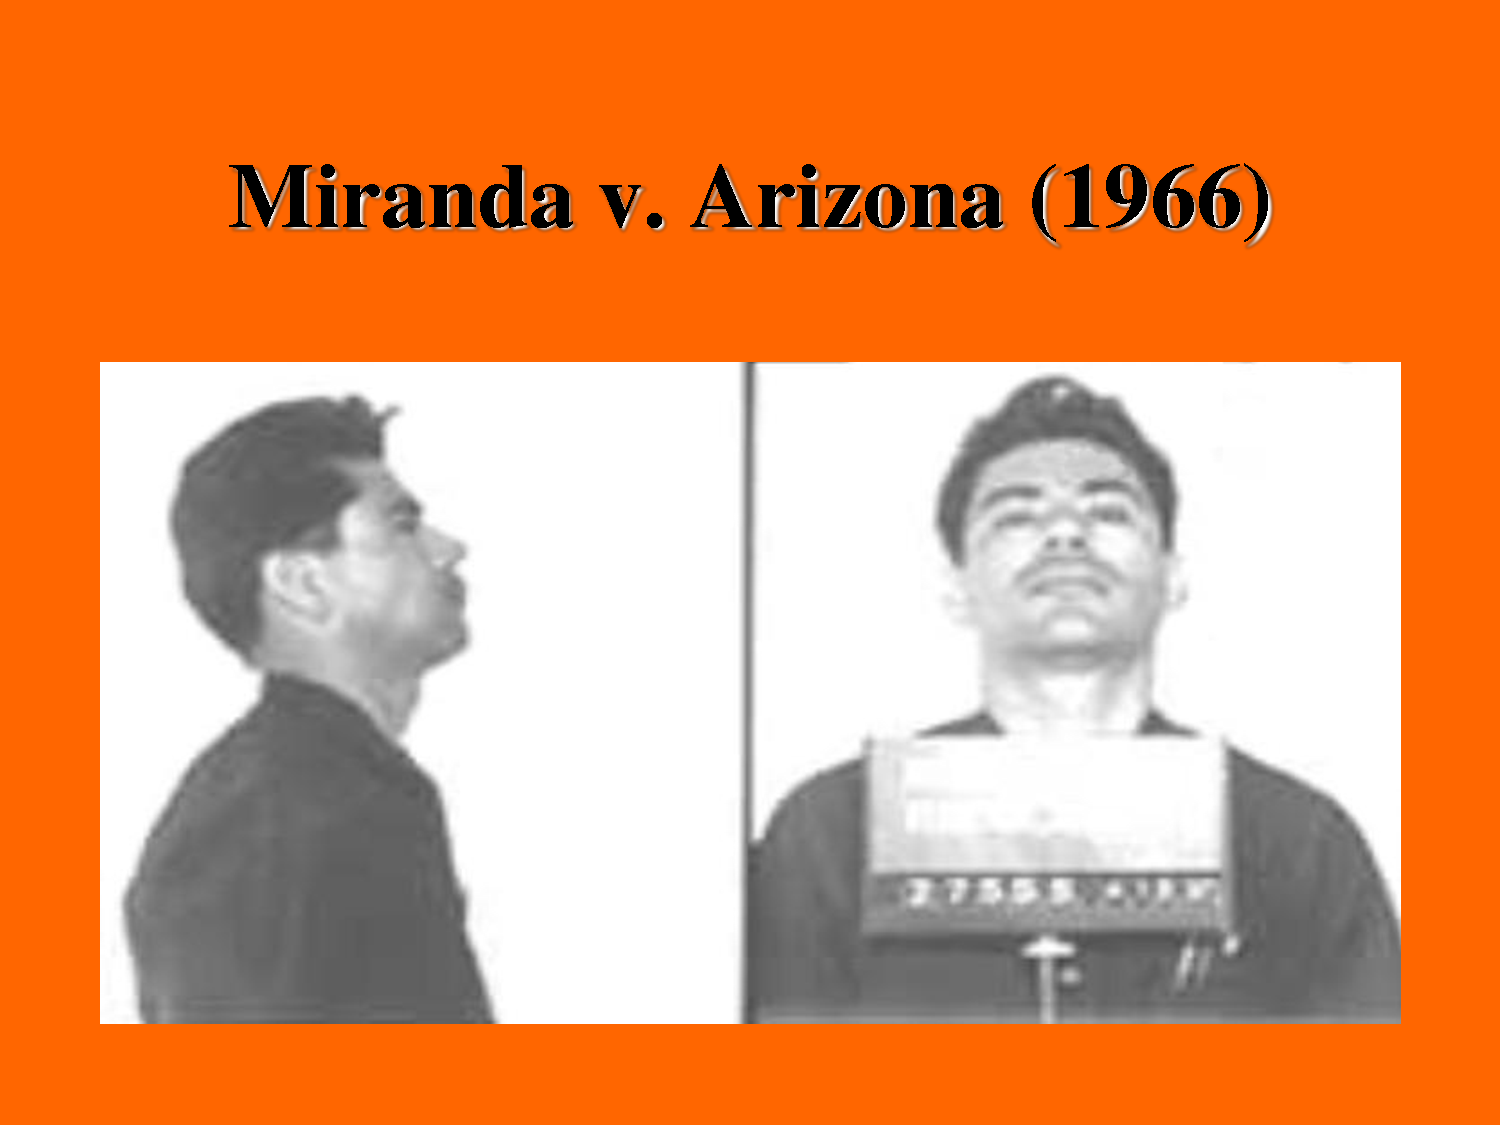 how has miranda v arizona changed the The miranda warnings have become a critical component of police interrogation policies officers must read them word for word, in case the suspect in custody should make any incriminating statements.